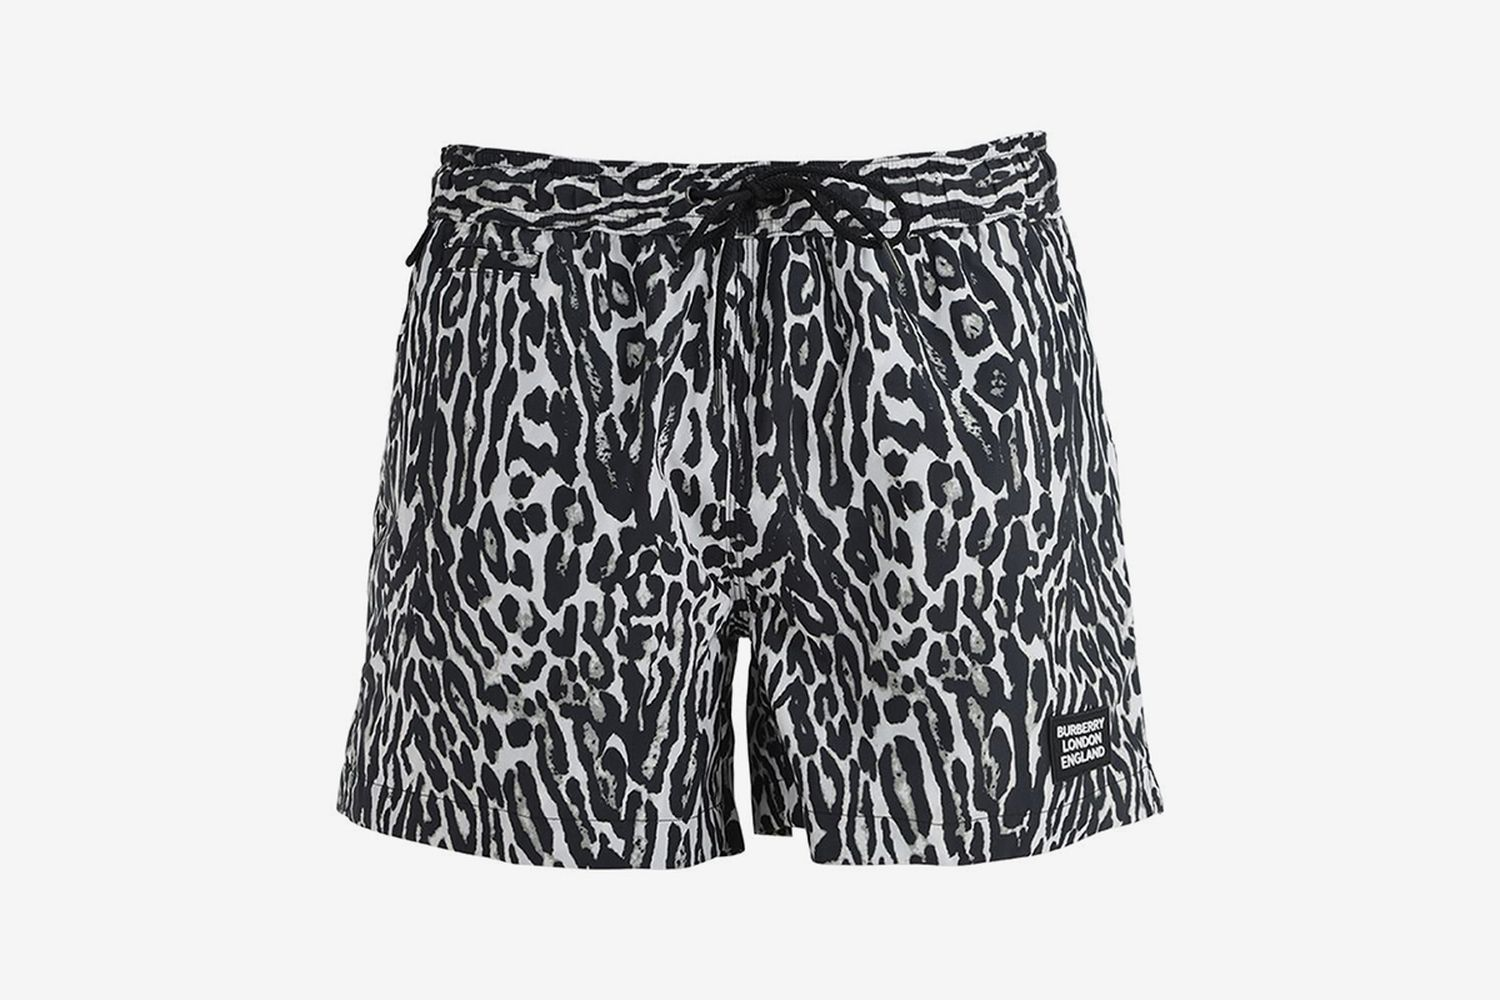 Leopard Print Nylon Swim Shorts